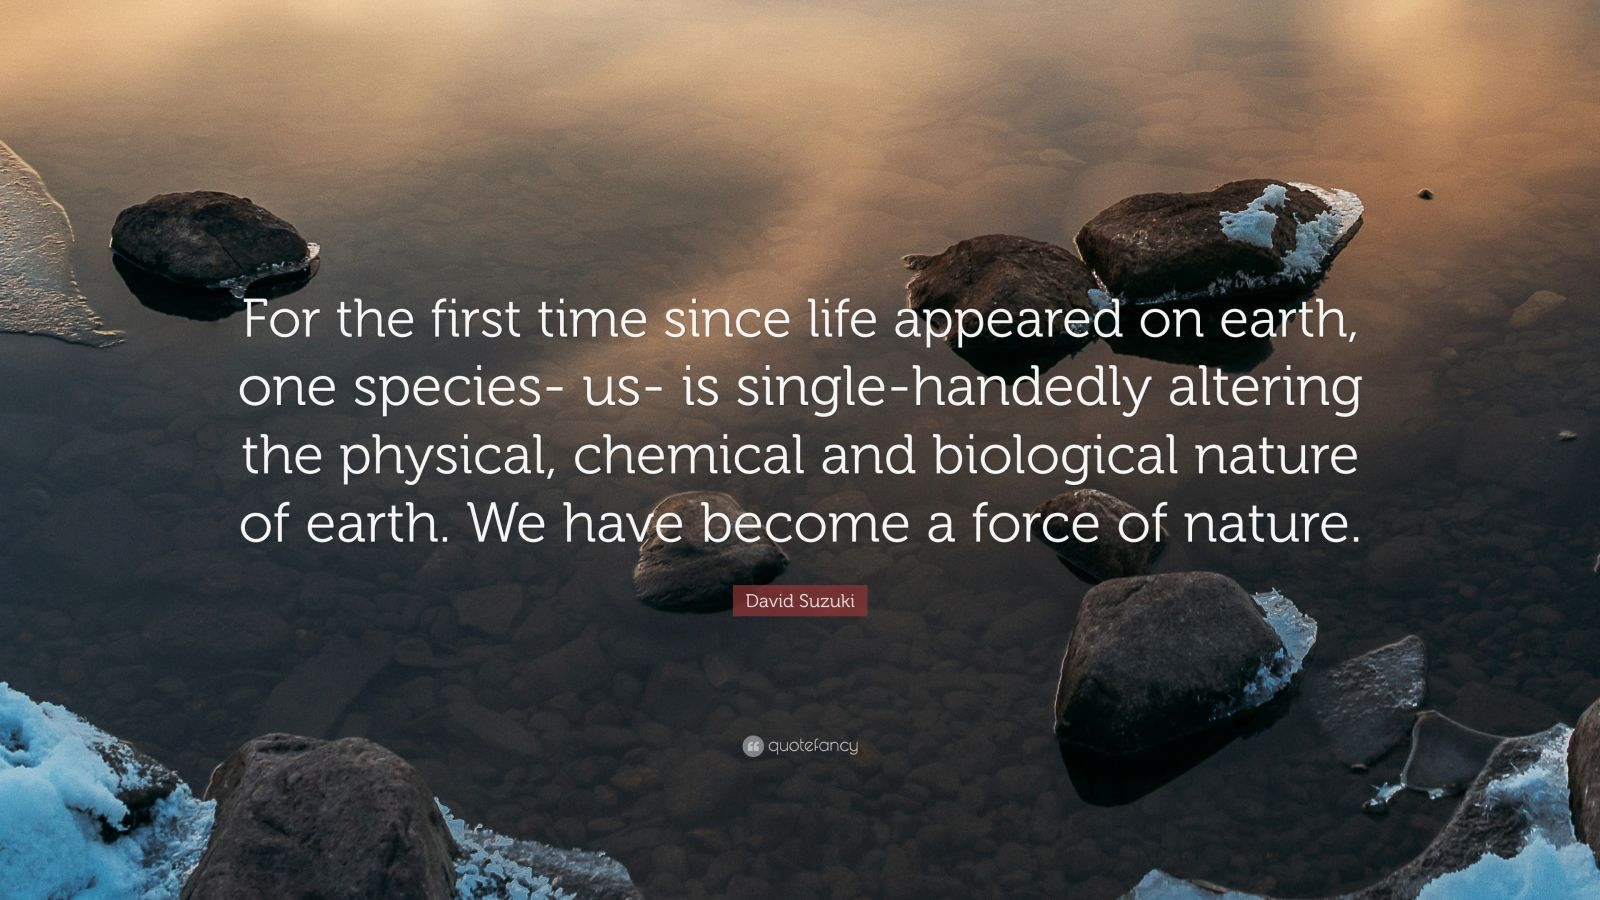 """David Suzuki Quote: """"For the first time since life appeared on earth, one species- us- is single-handedly altering the physical, chemical and biological nature of earth. We have become a force of nature."""""""